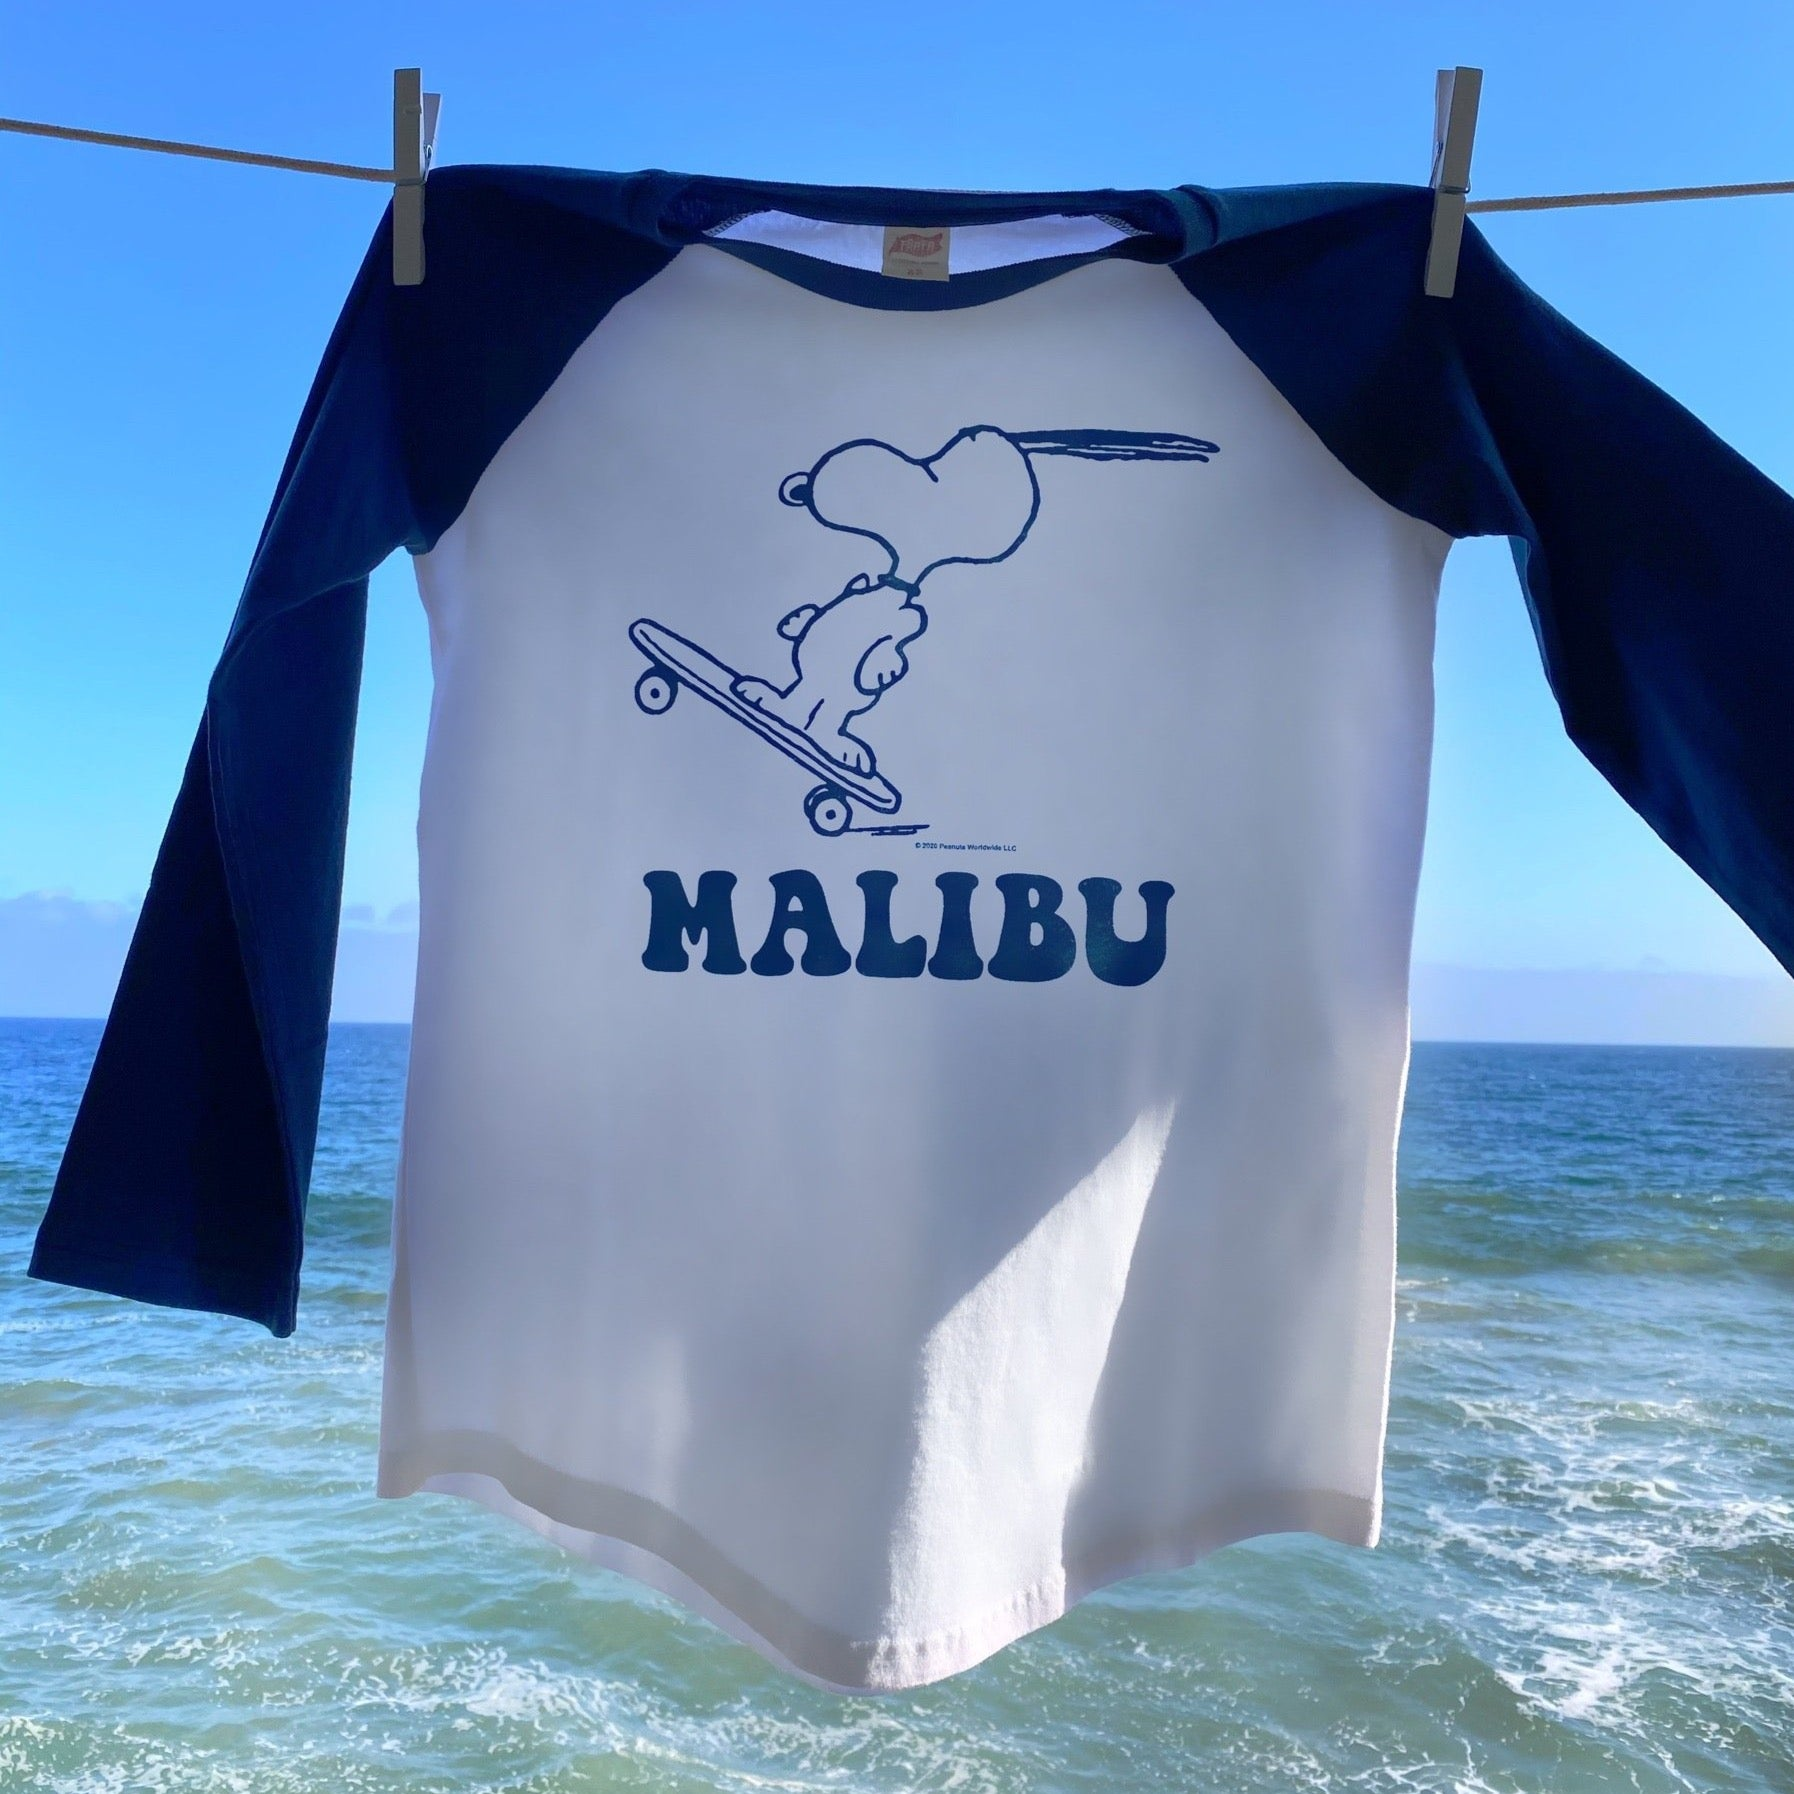 TSPTR Malibu Peanuts Raglan T-Shirt. White shirt with blue sleeves. Design of Snoopy riding a skateboard on the front.